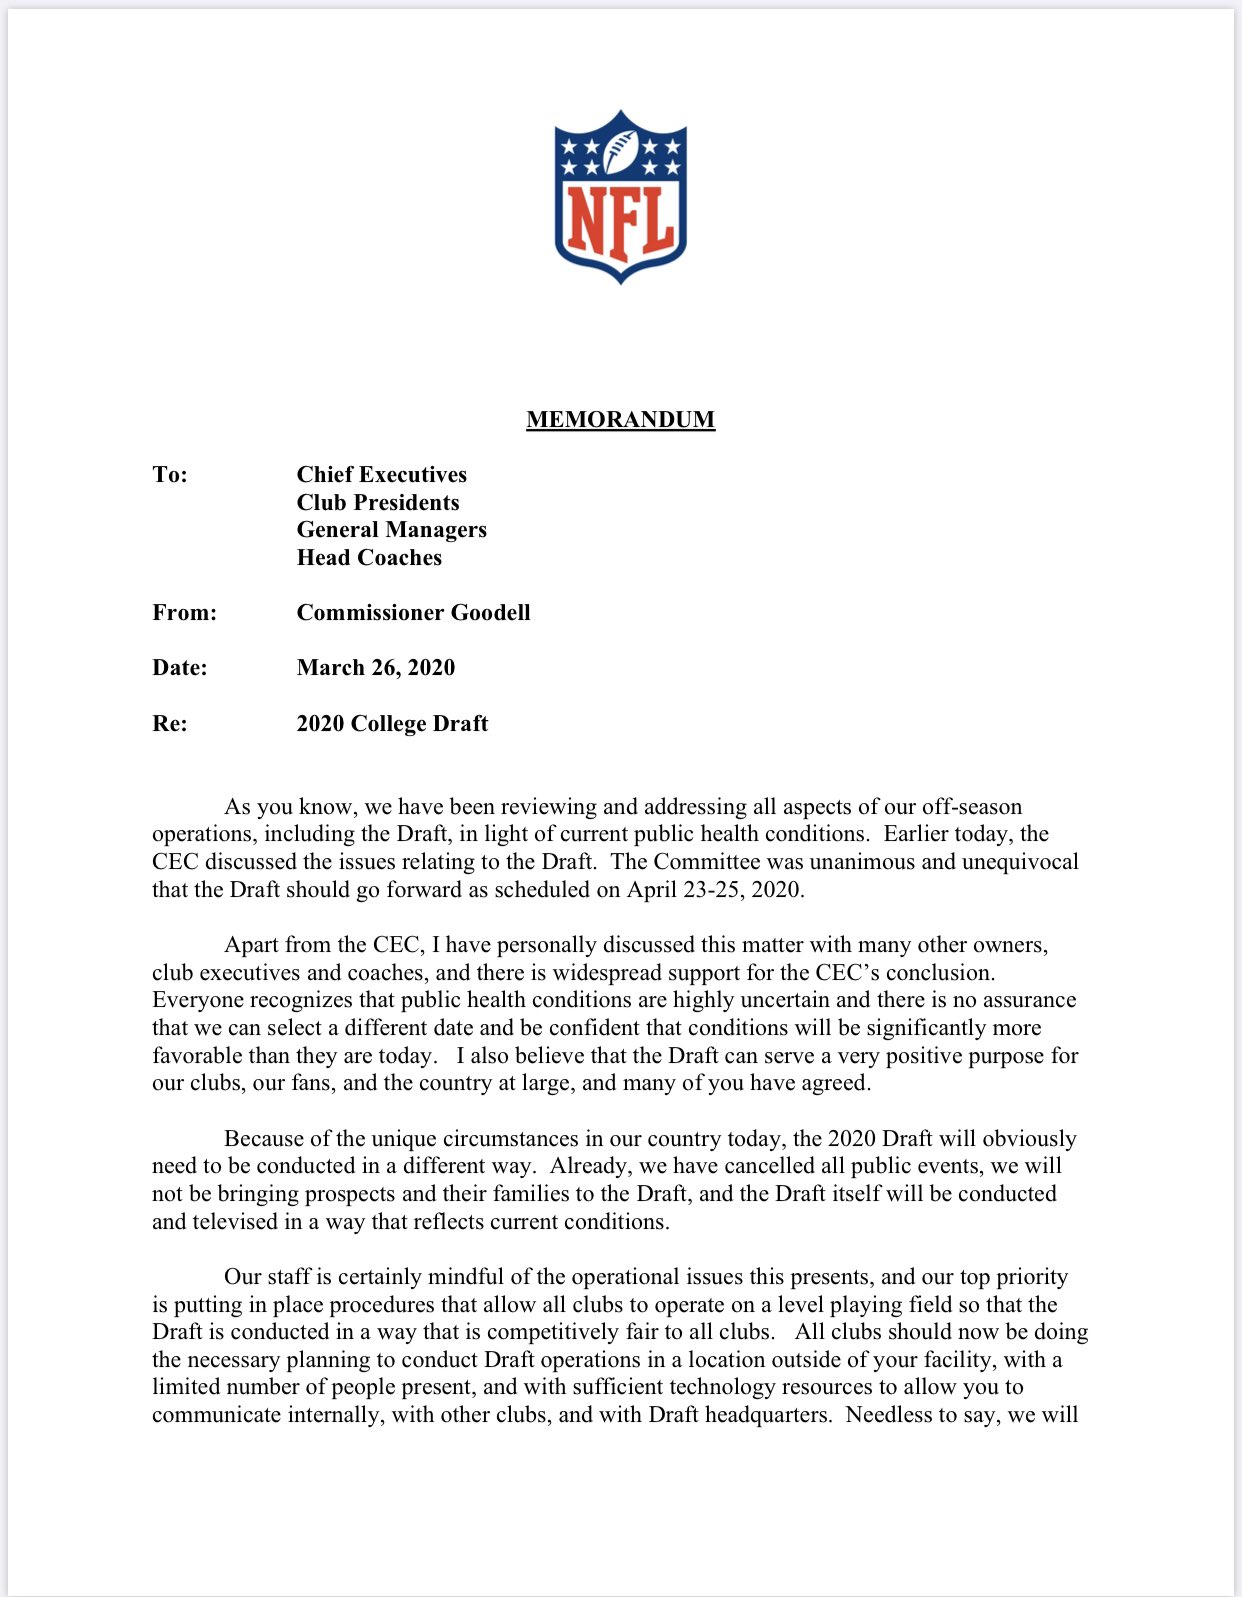 Commissioner Goodell sent out a memo to NFL teams tonight that the draft will go on April 23-25. https://t.co/tYlHo3fKqC